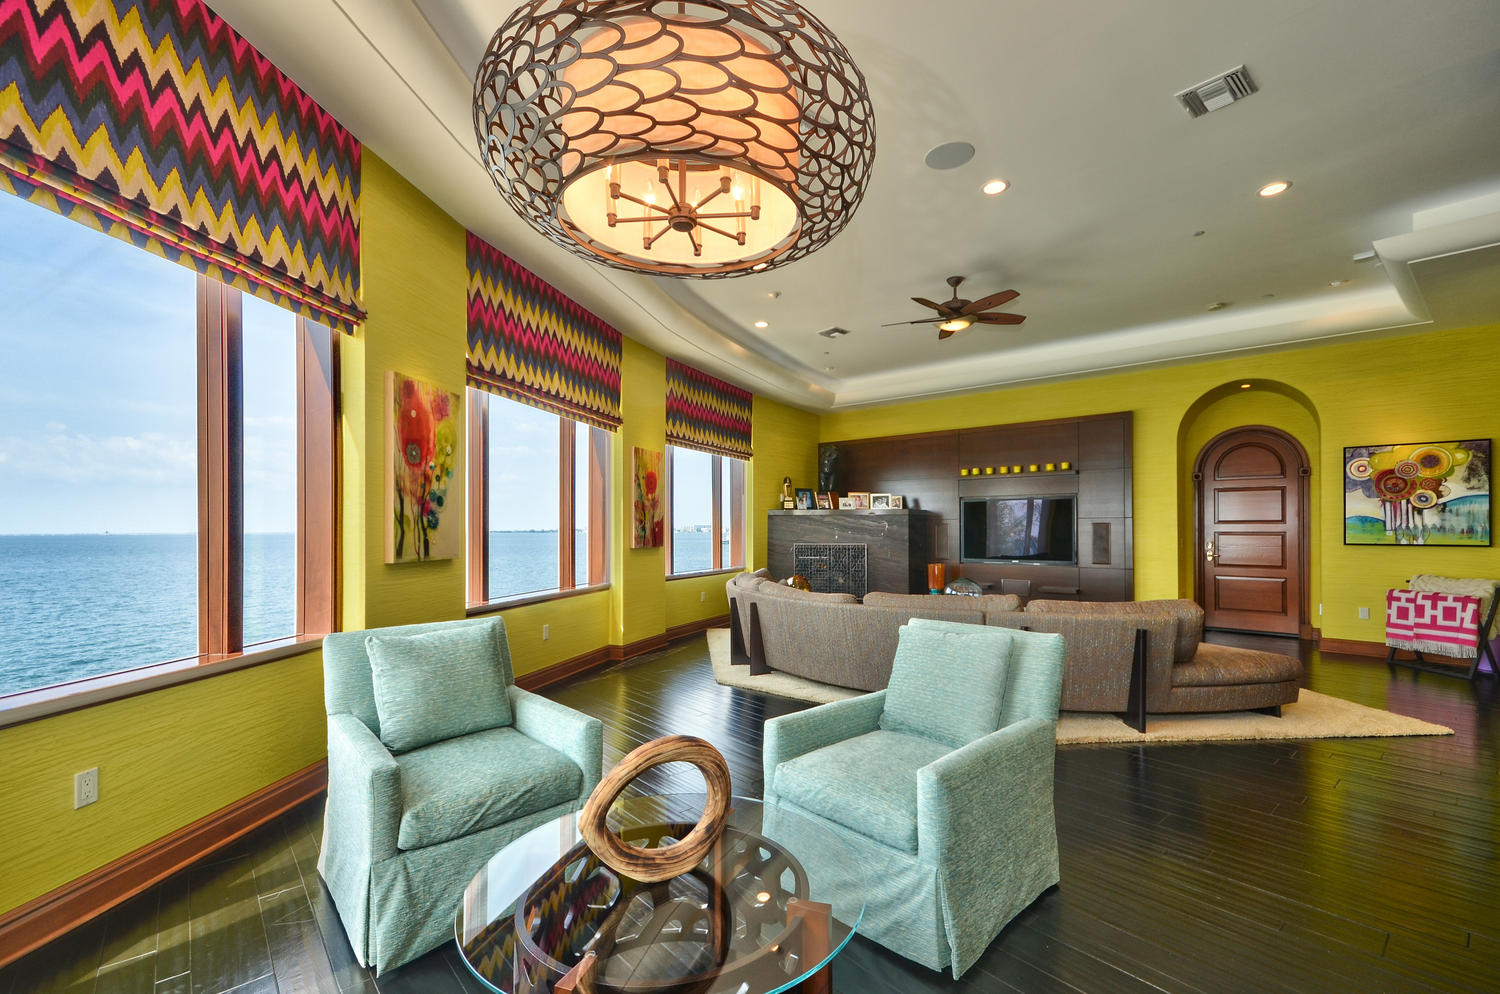 This colorful, sunny home in Tampa was designed by Crespo Design Group. The room space features a custom Italian sofa and bright roman shades in a zig zag fabric from Schumacher.